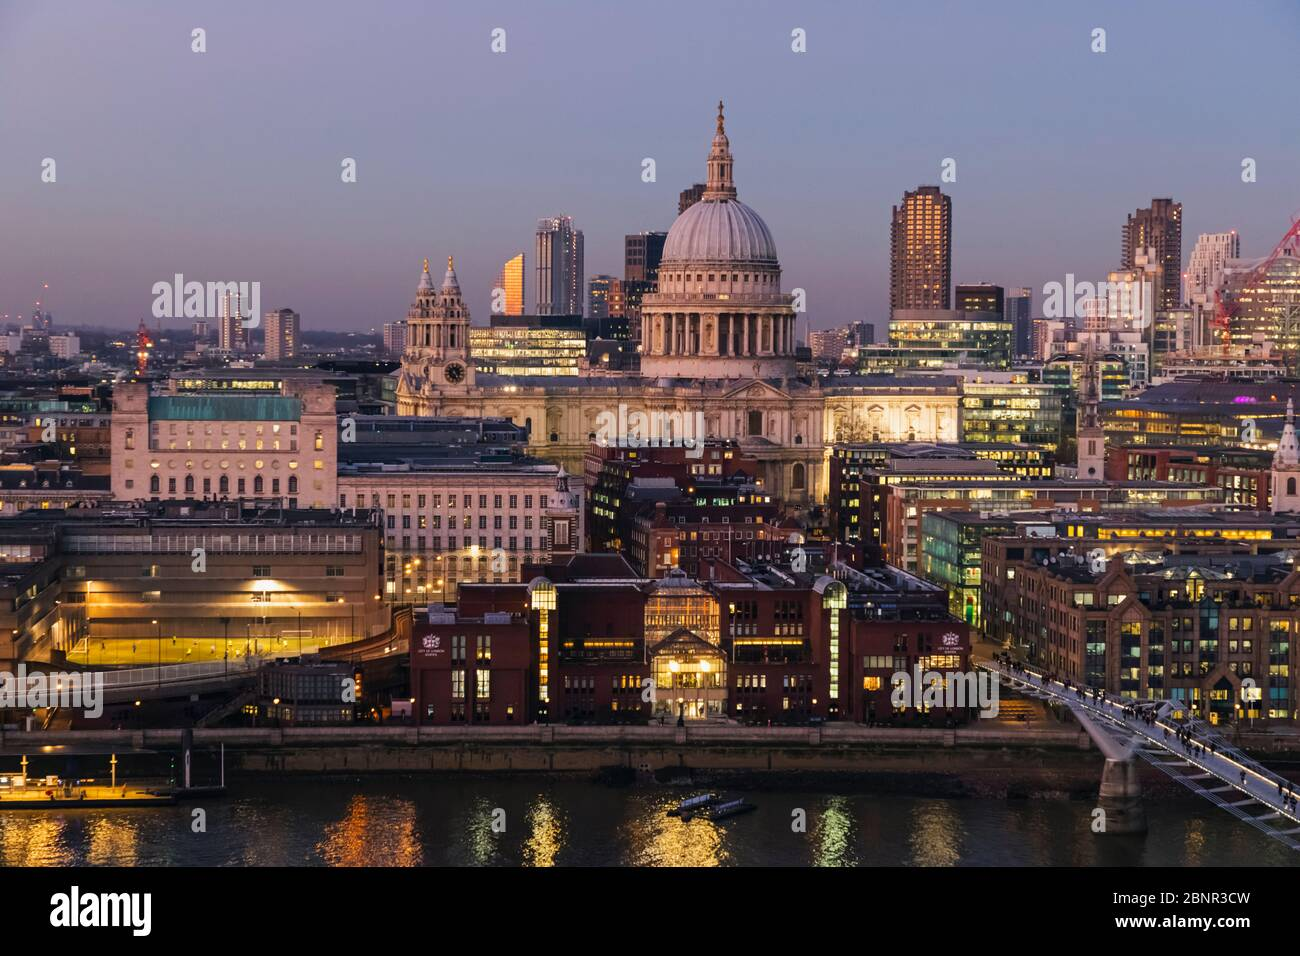 England, London, City of London, St Paul's Cathedral with Millenium Bridge and City of London Skyline Stock Photo